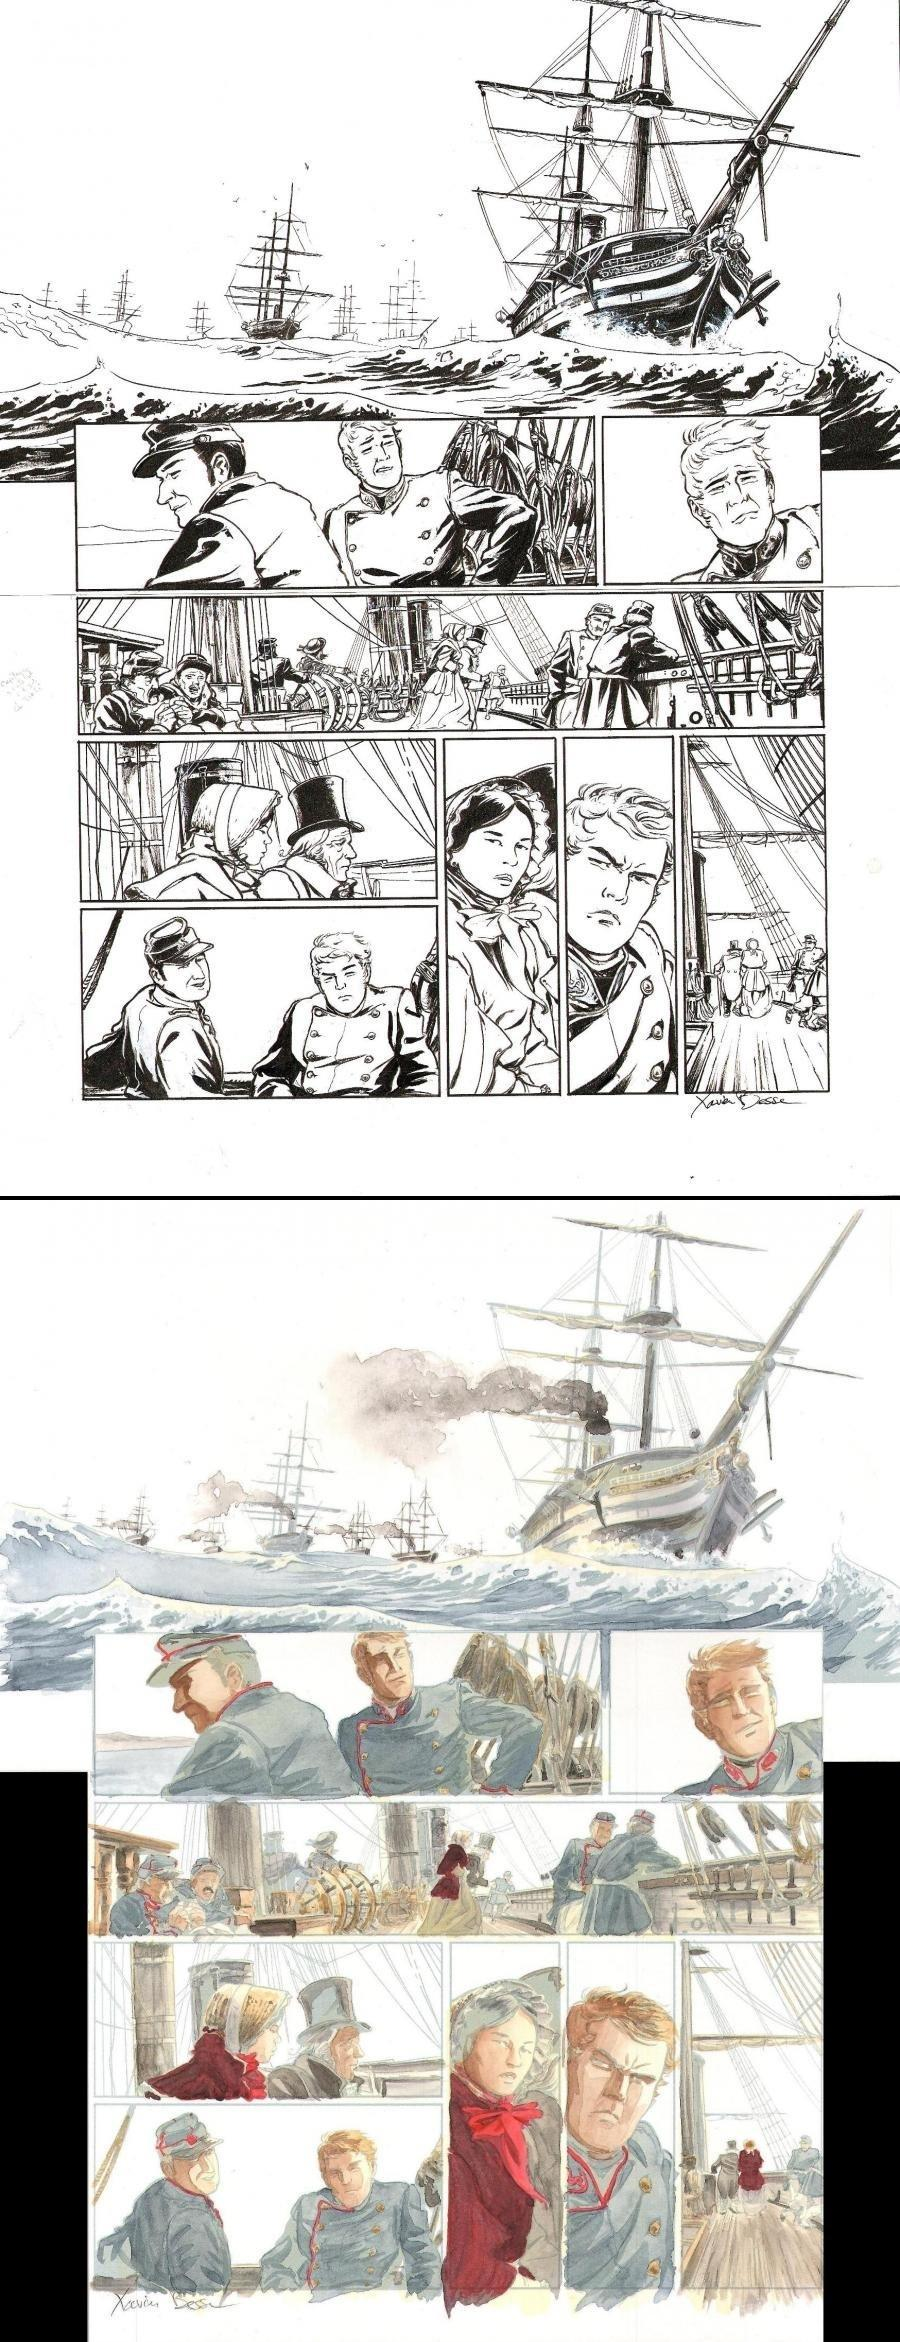 Original page 23 from LAOWAI Issue 1.  La guerre de l'opium by Xavier BESSE